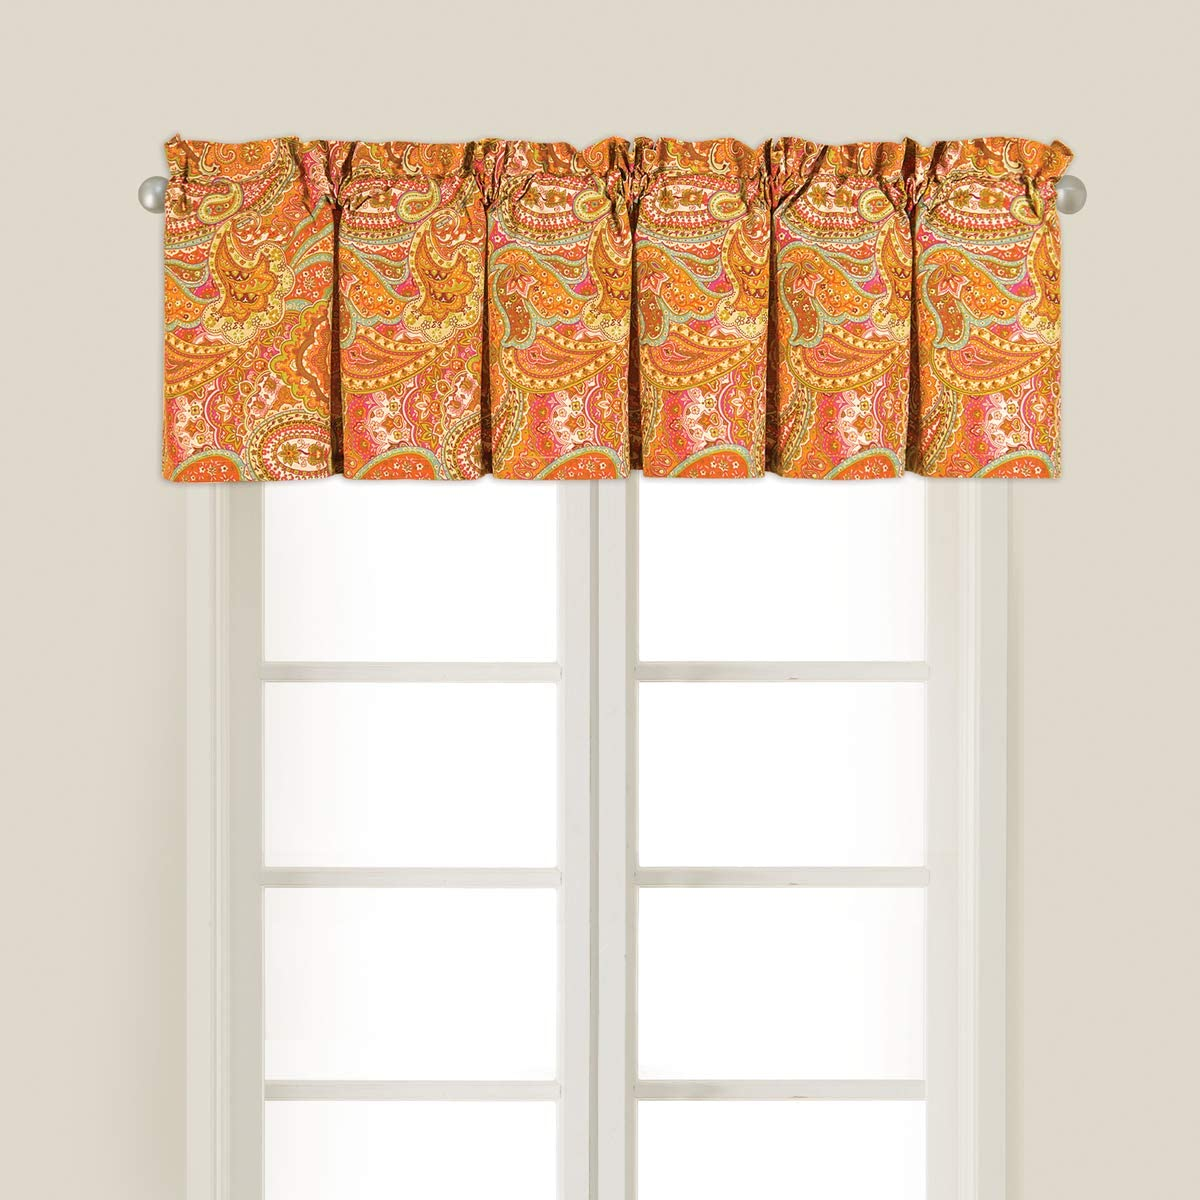 C&F Home Veda Orange Traditional Paisley Spring Summer Cotton Bedroom Guestroom Premium Window Woven Valance Valance Orange